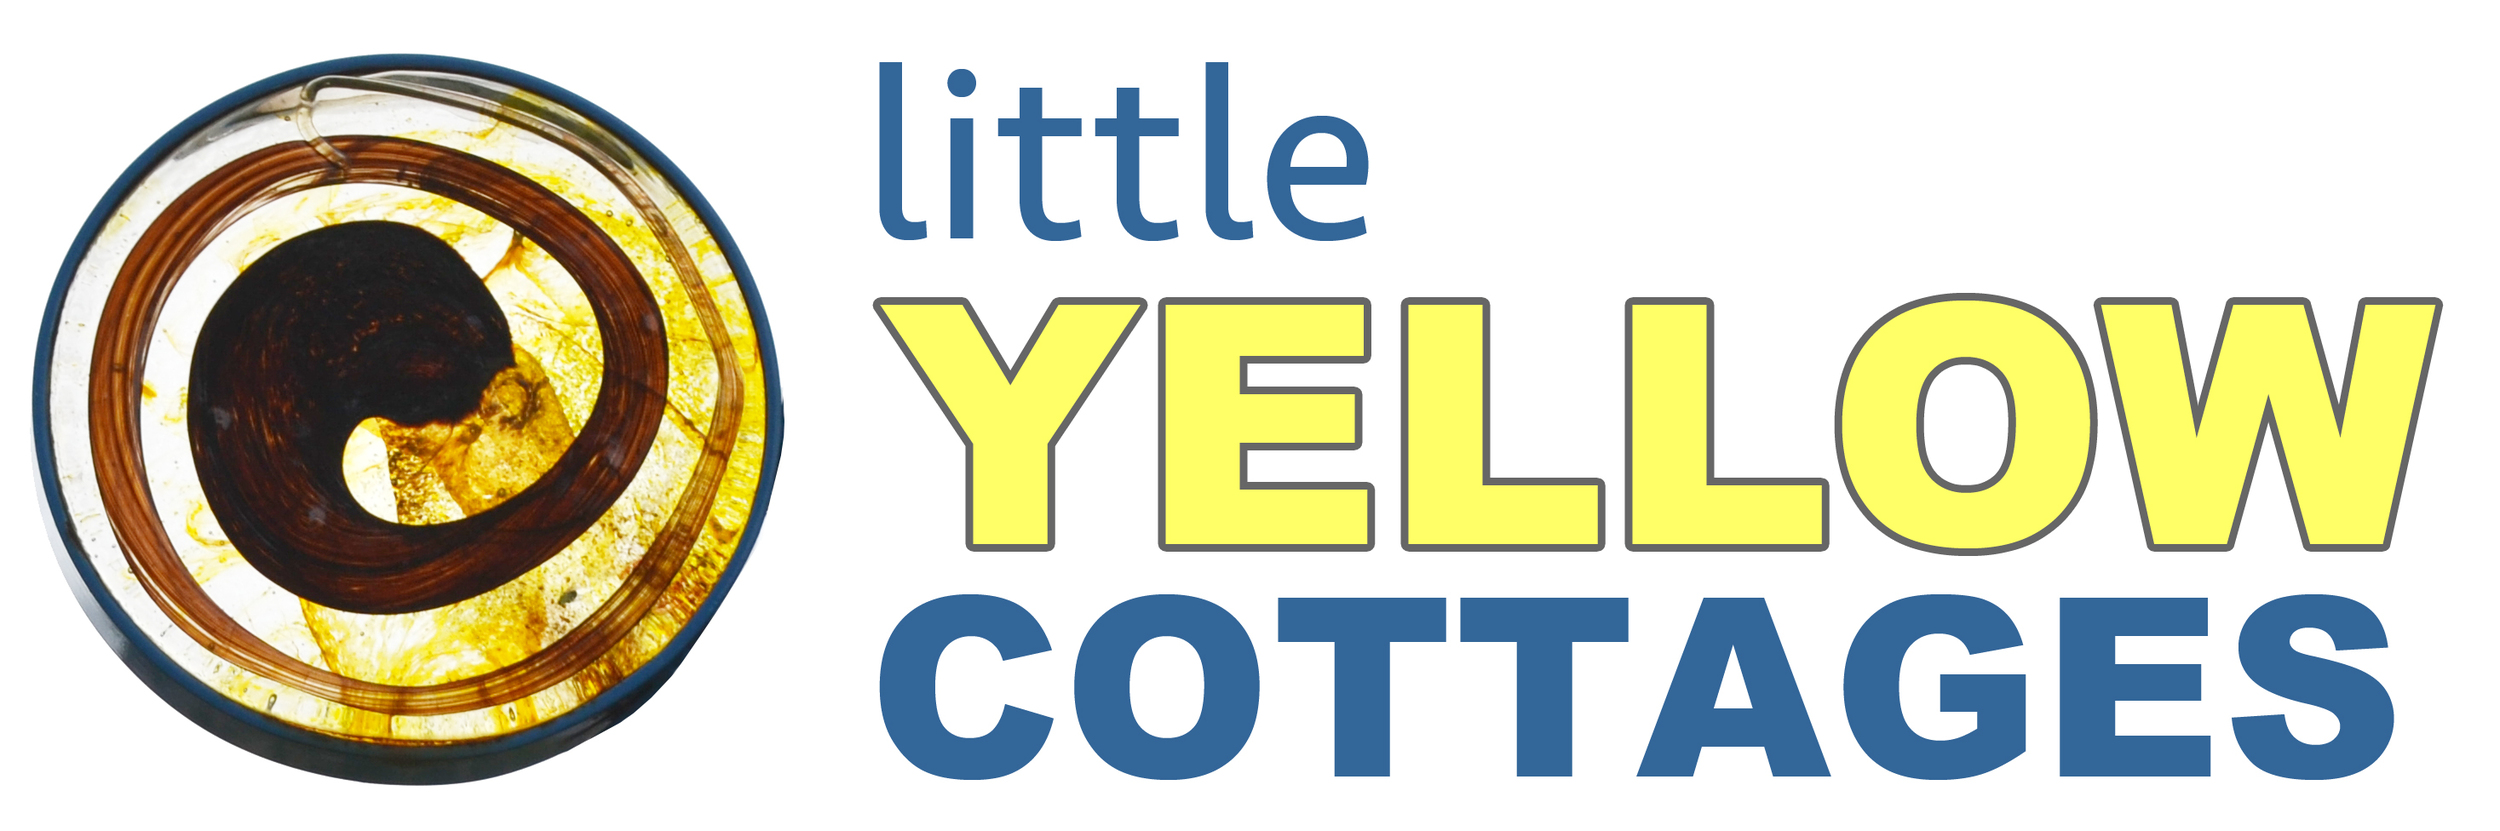 Little Yellow Cottages Logo